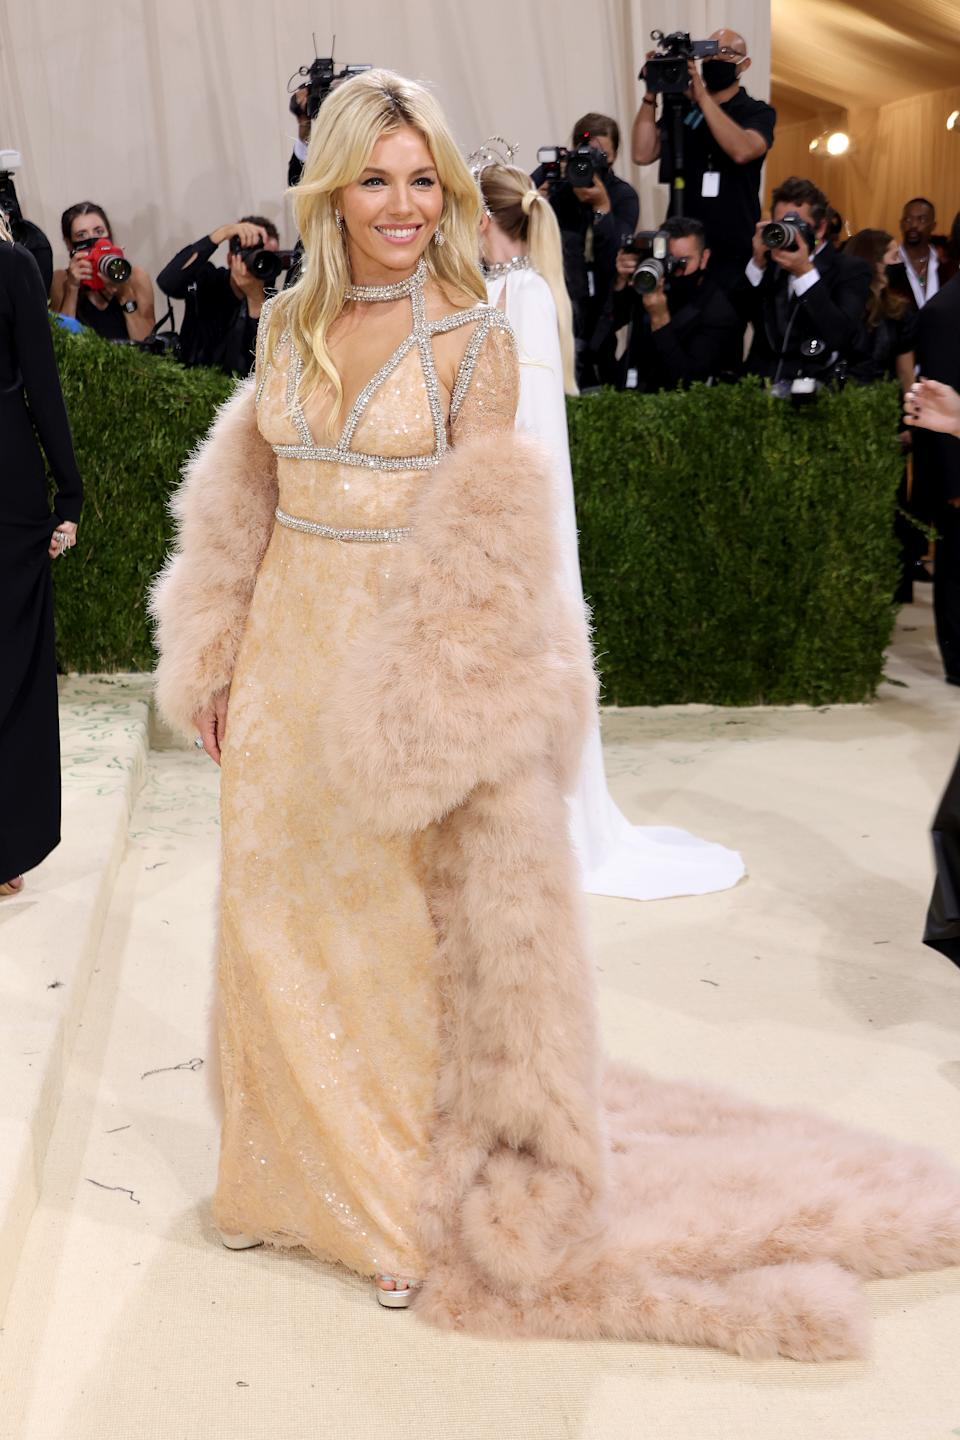 NEW YORK, NEW YORK - SEPTEMBER 13: Sienna Miller attends The 2021 Met Gala Celebrating In America: A Lexicon Of Fashion at Metropolitan Museum of Art on September 13, 2021 in New York City. (Photo by John Shearer/WireImage)